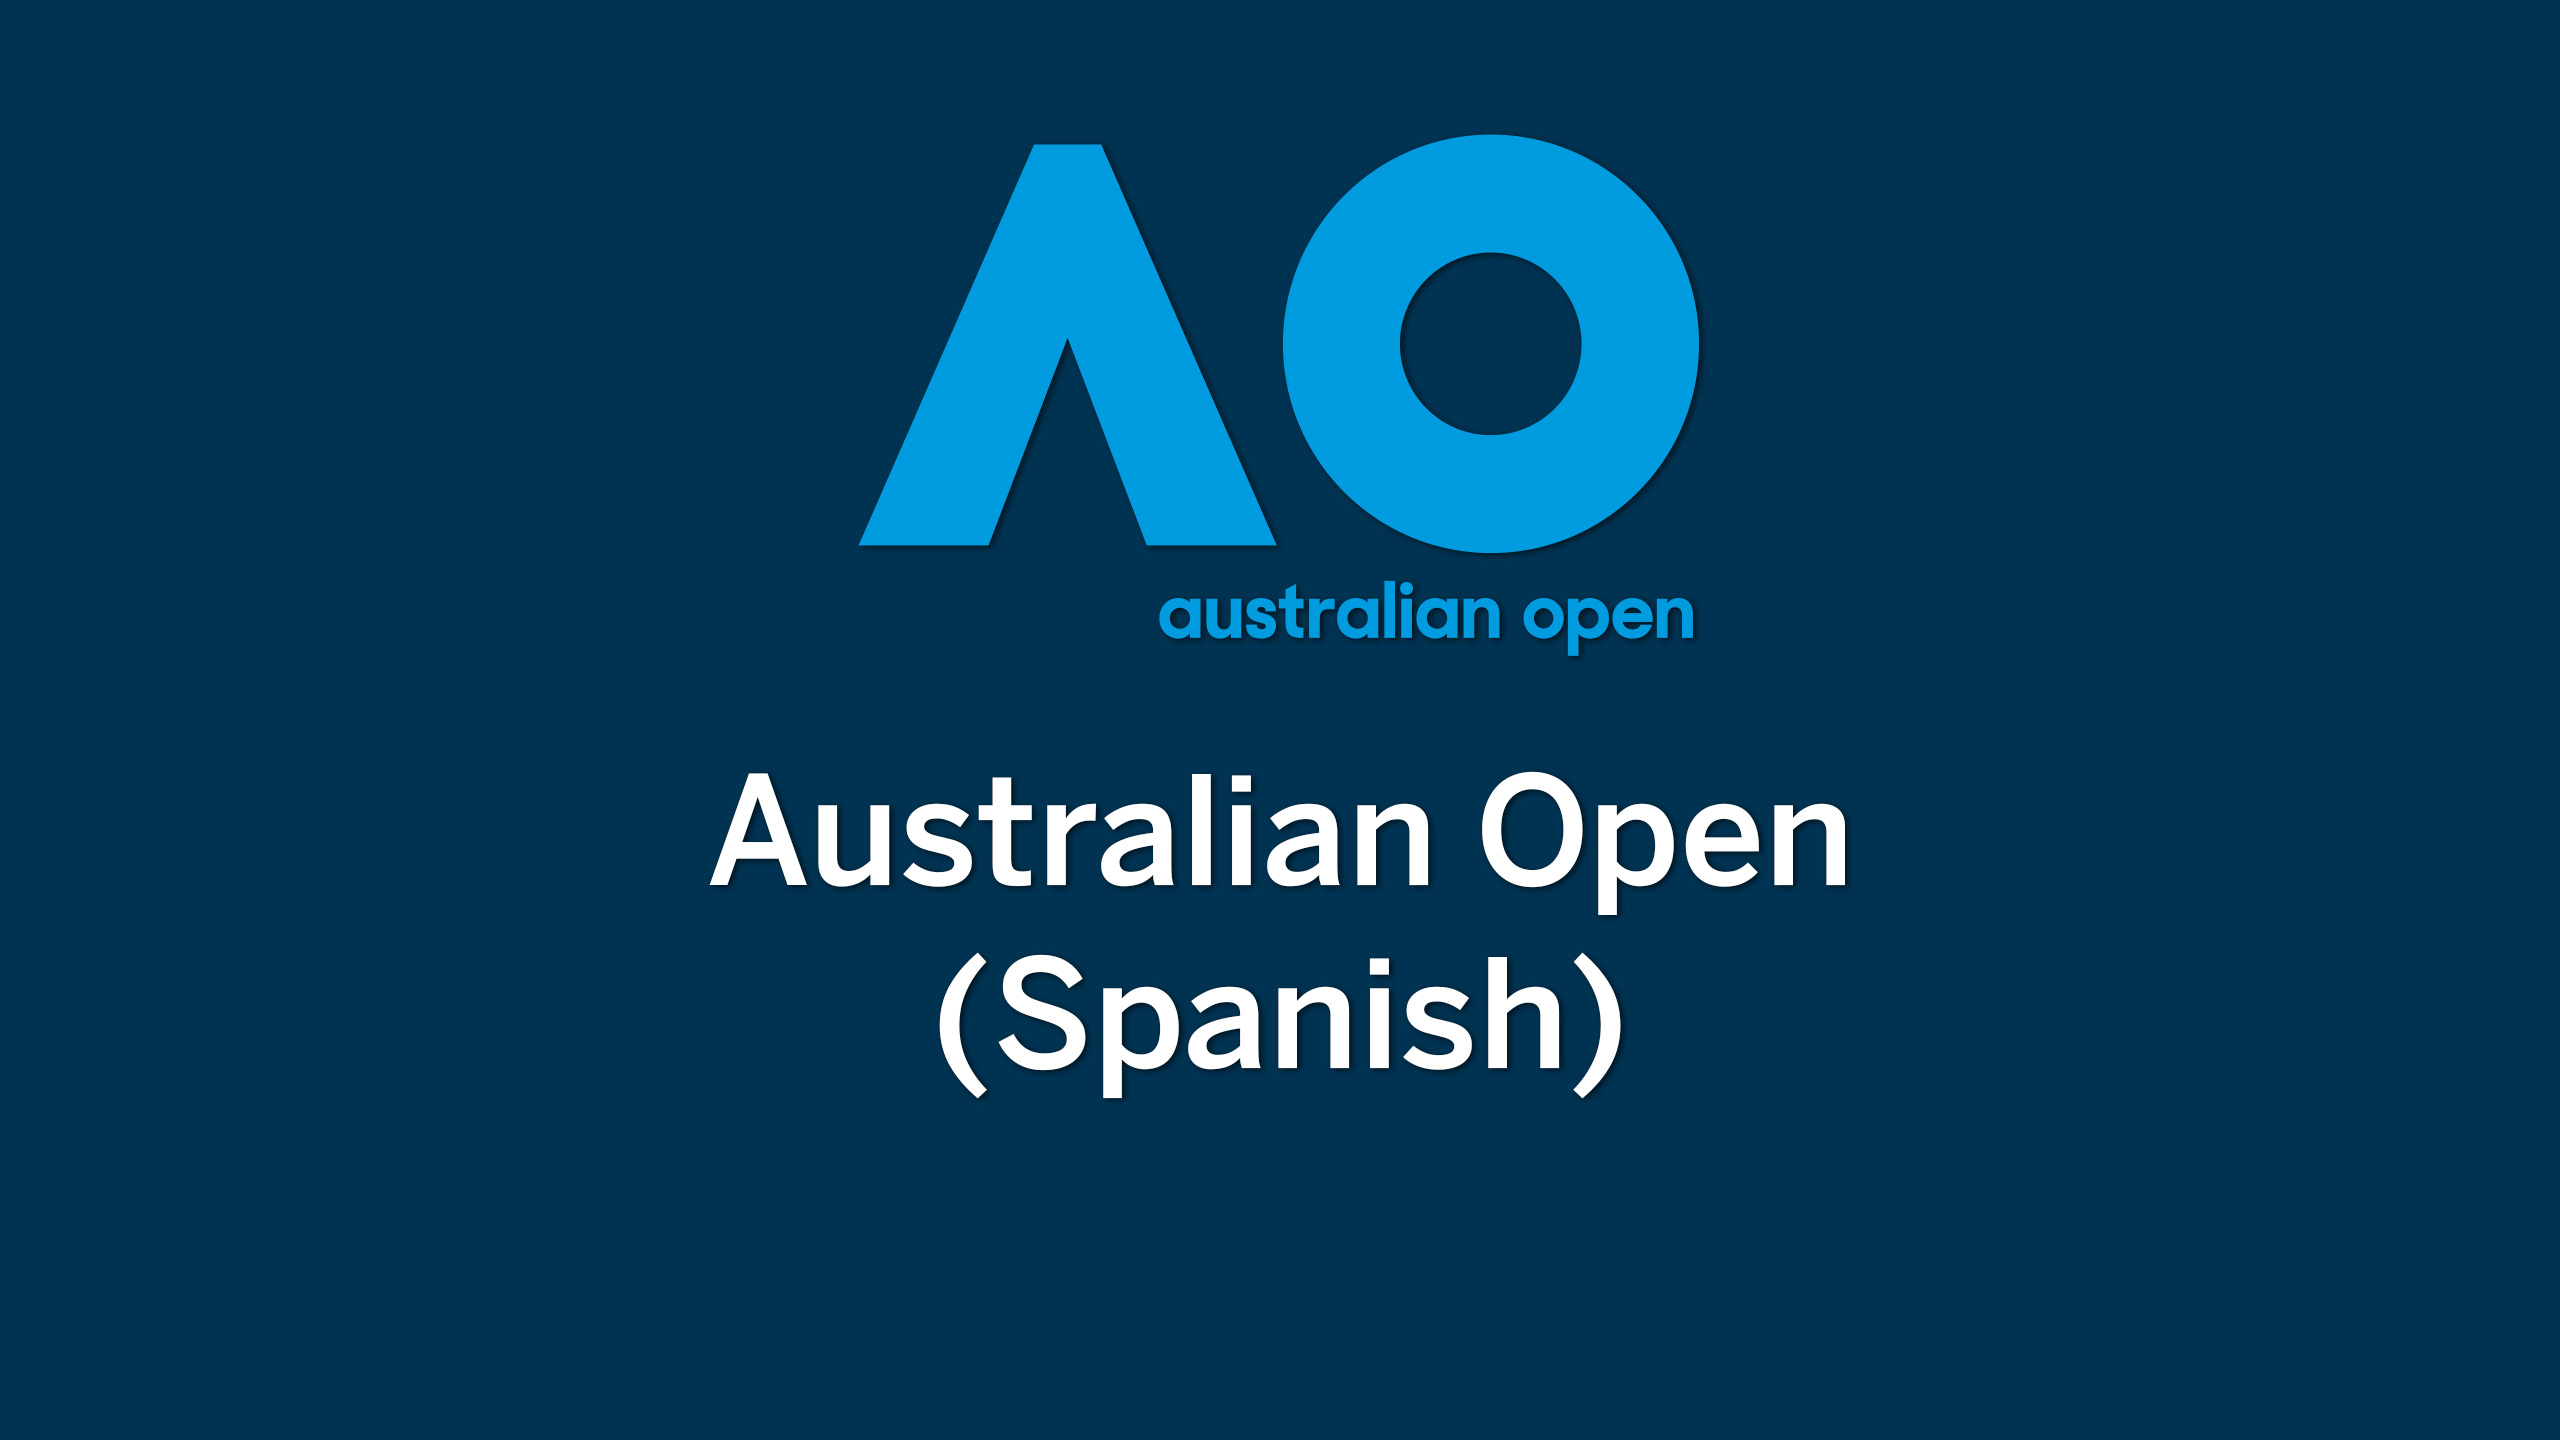 In Spanish - Australian Open Tennis (Men's Semifinals)